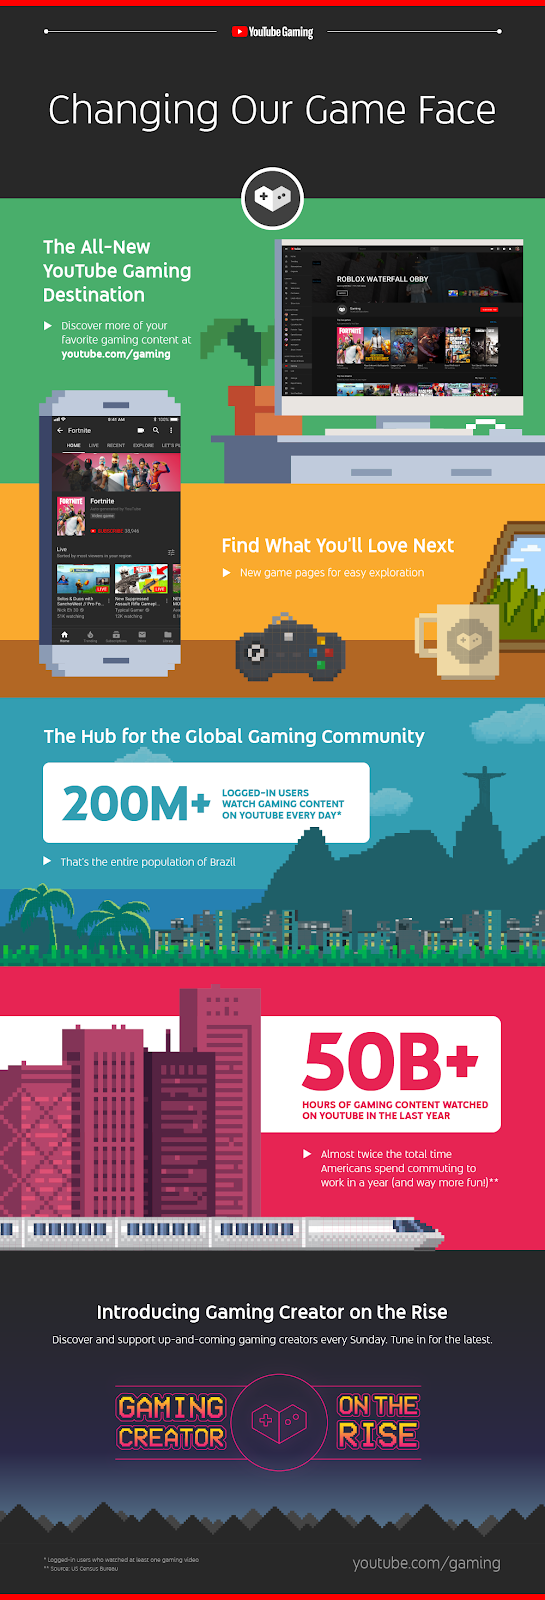 Infographic looks at the growth of gaming content on YouTube